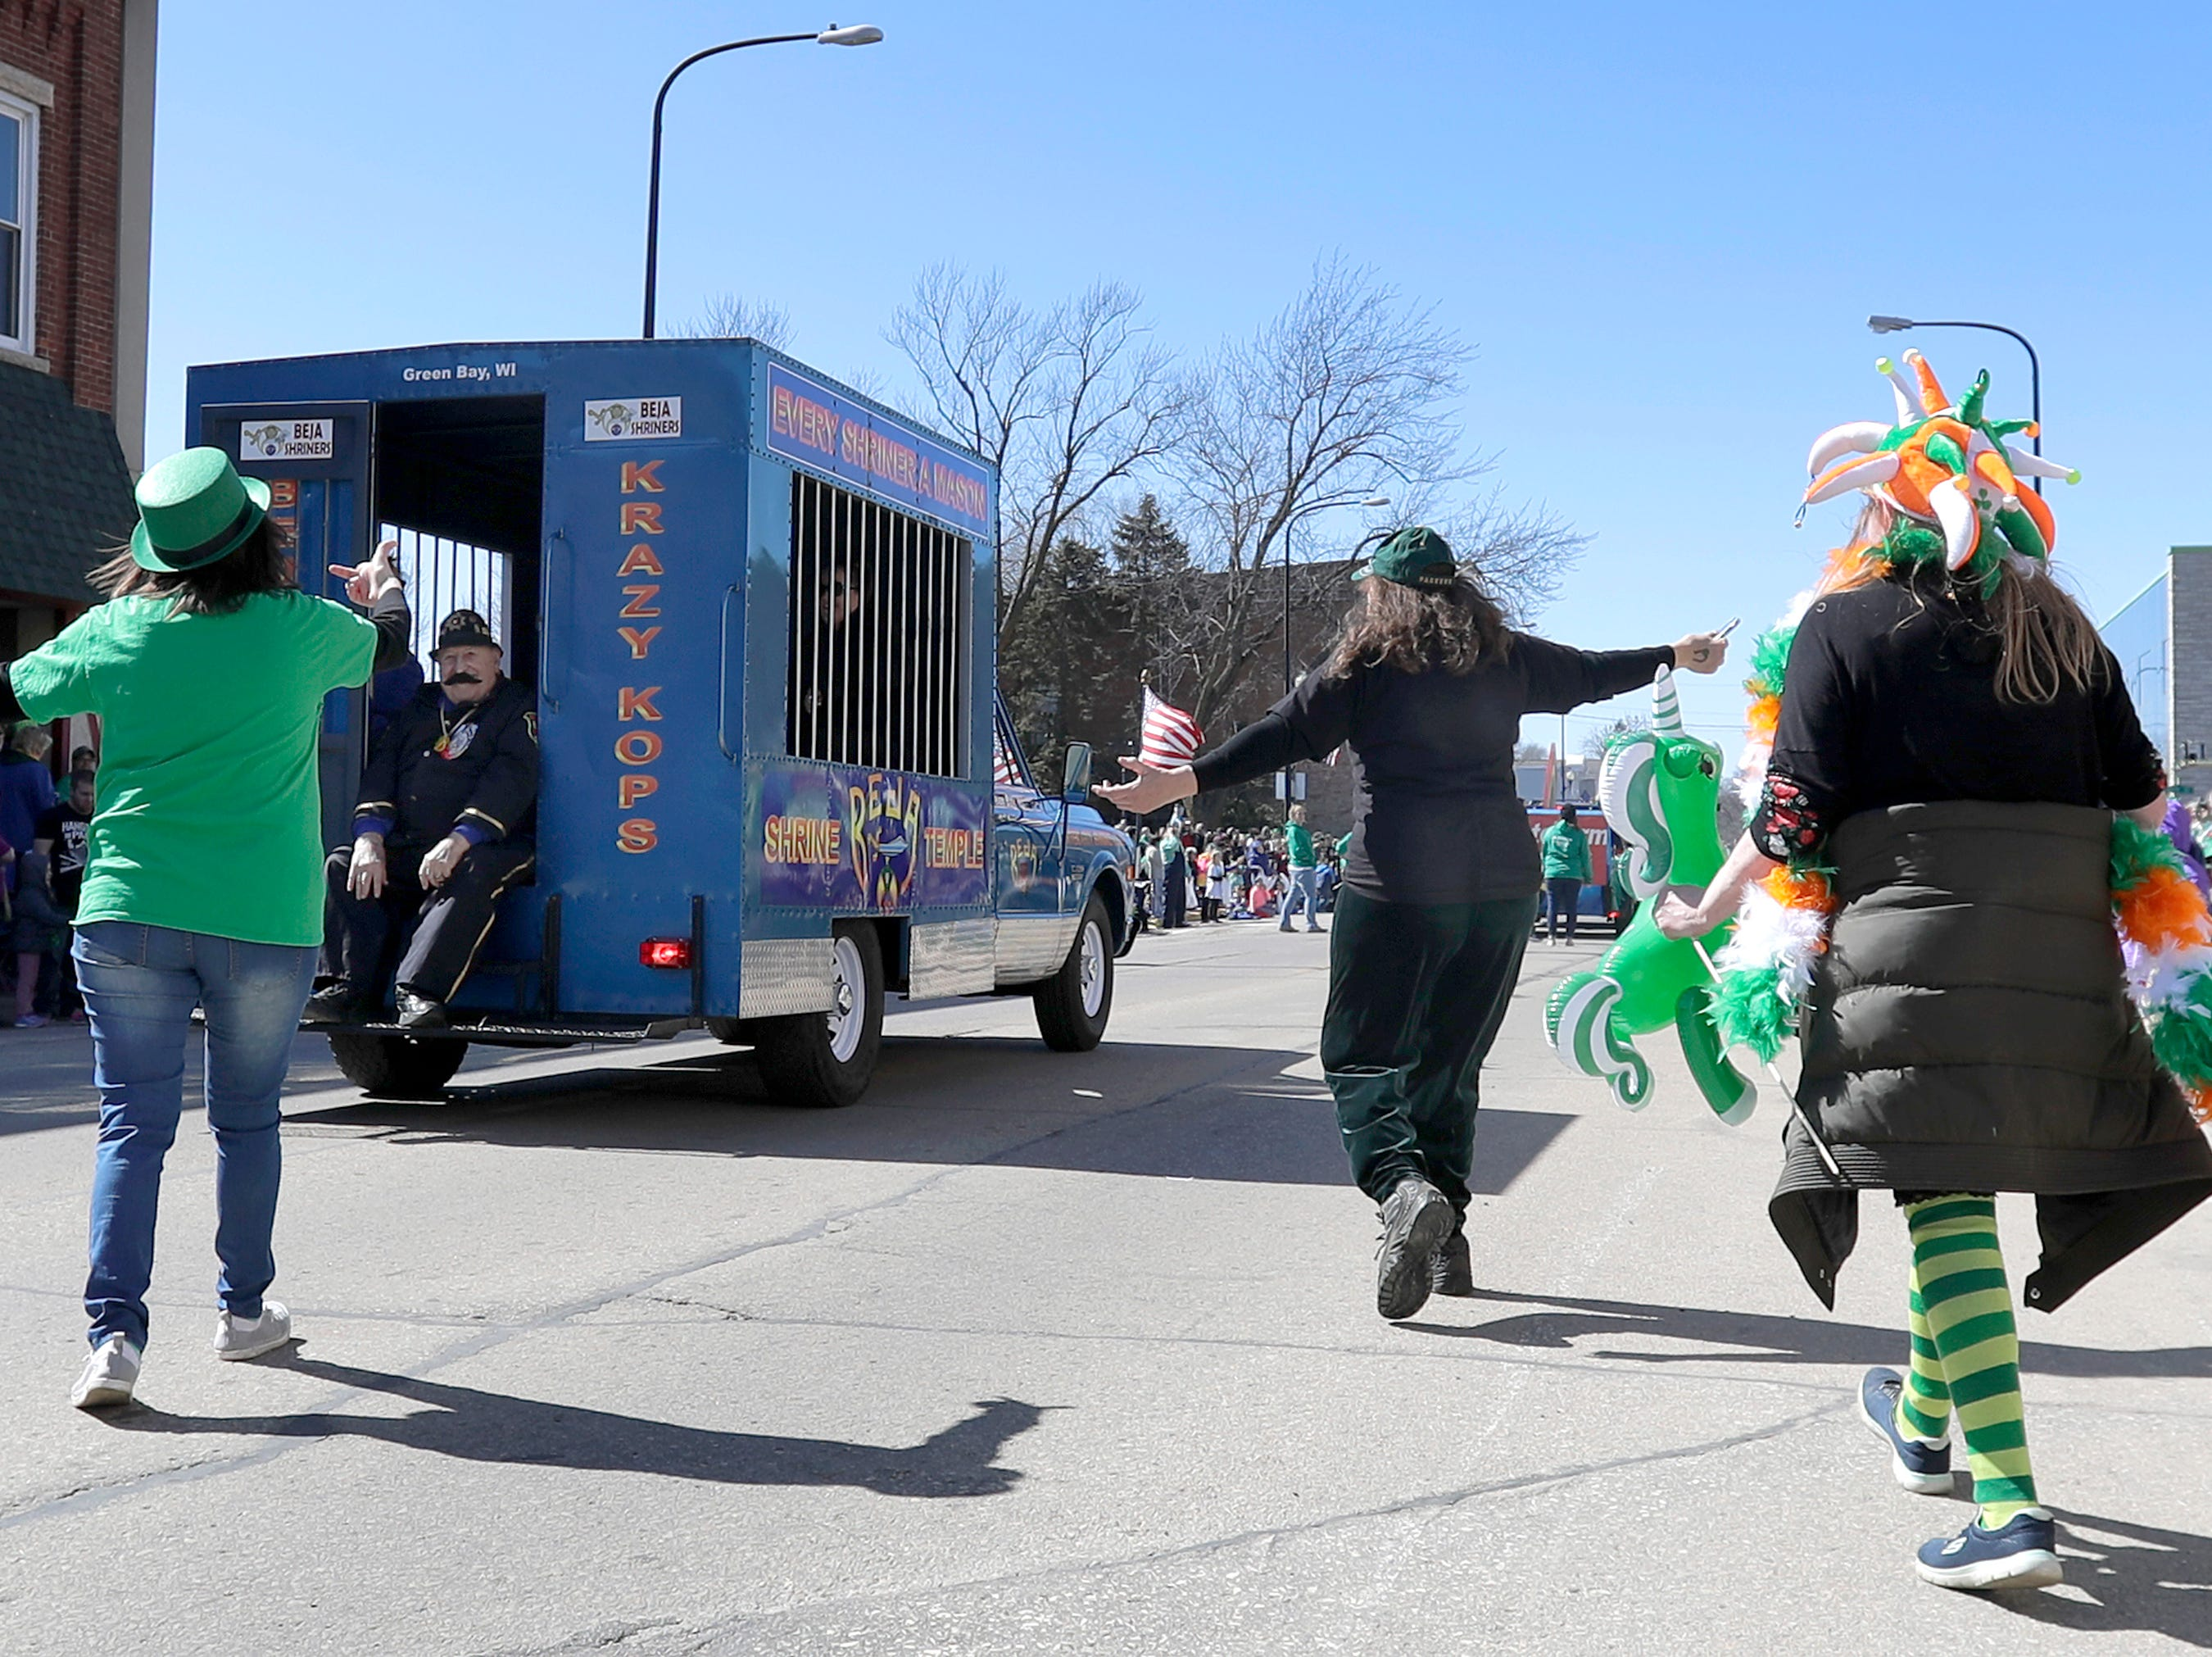 """Parade goers try to get """"arrested"""" by the Krazy Kops during the New Dublin St. Patrick's Day Grand Parade on Saturday, March 23, 2019, in New London, Wis.Wm. Glasheen/USA TODAY NETWORK-Wisconsin."""